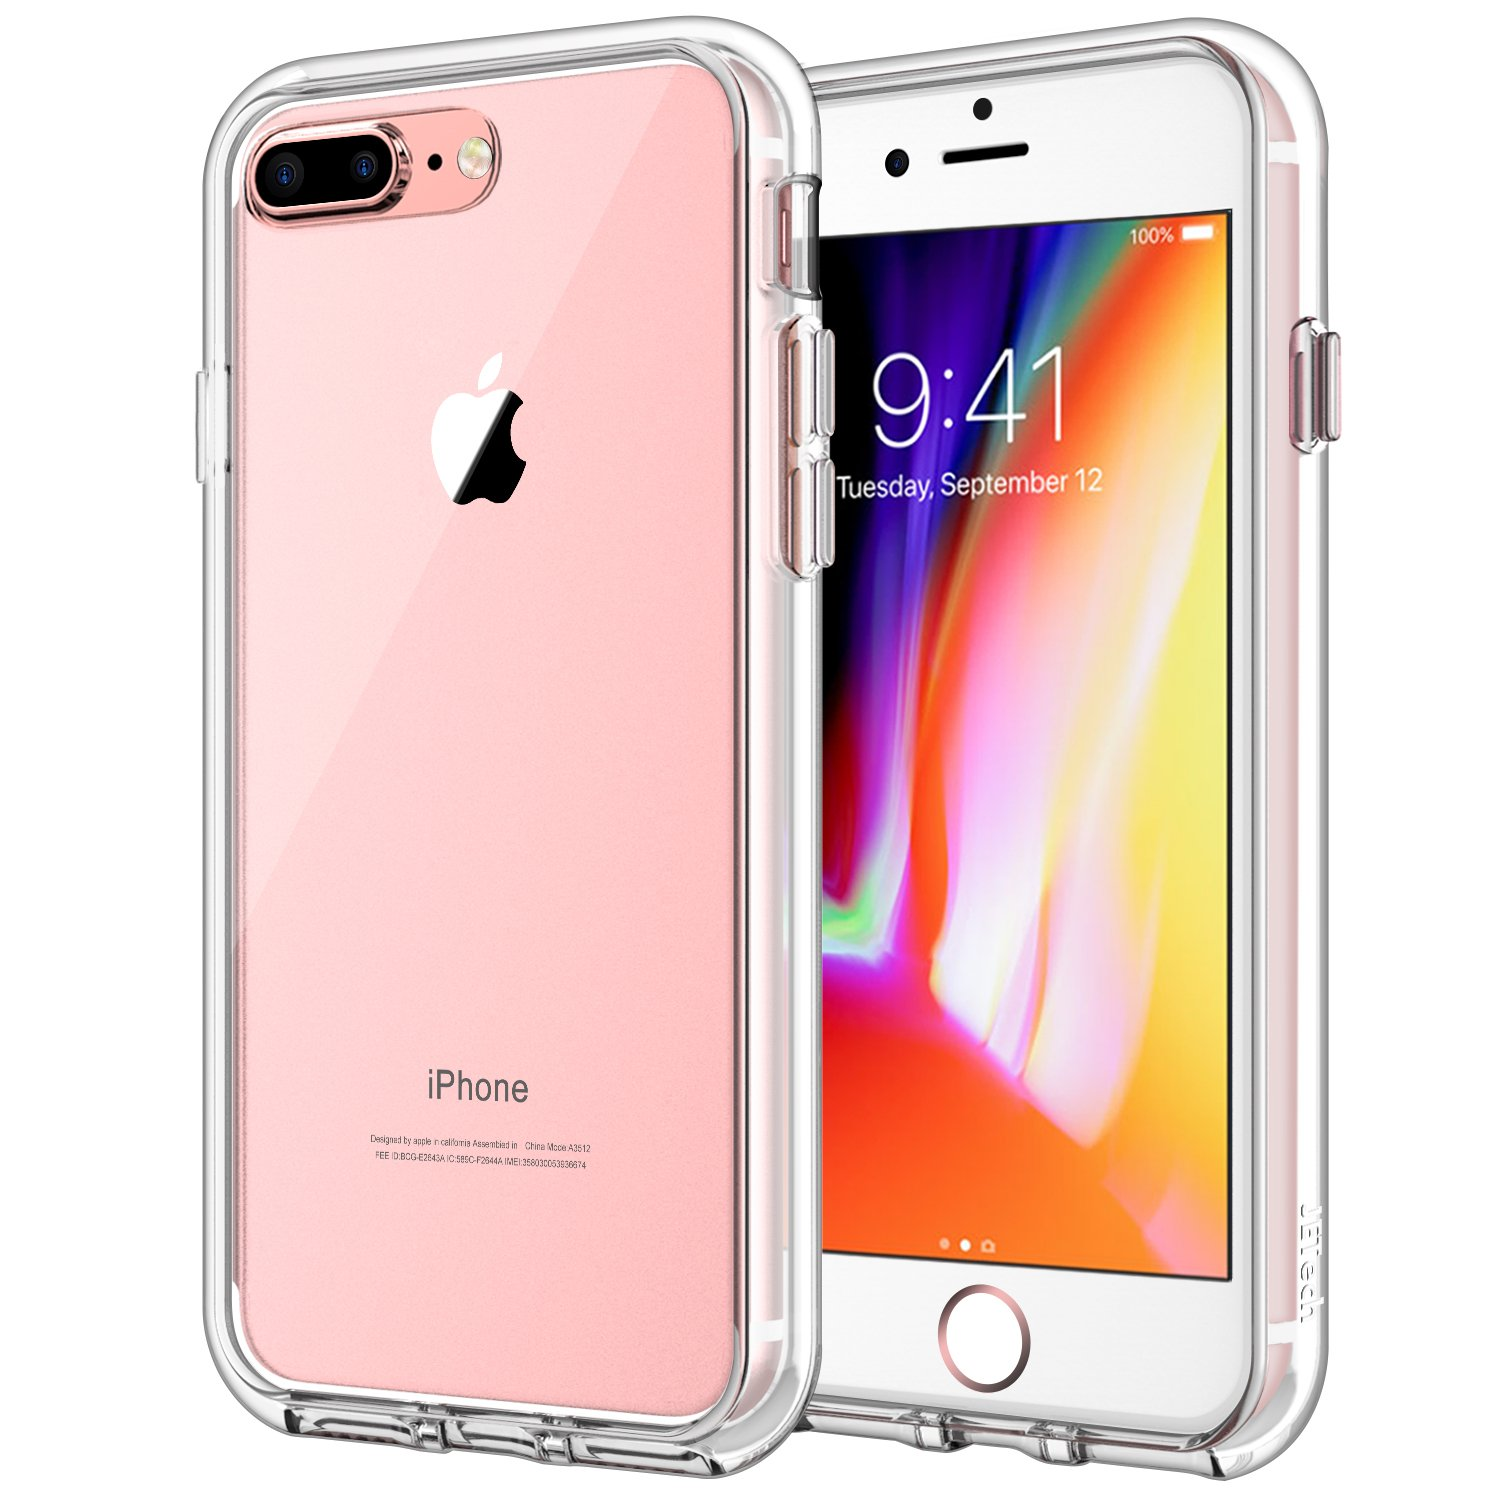 iphone 7 plus phone case amazon co uk